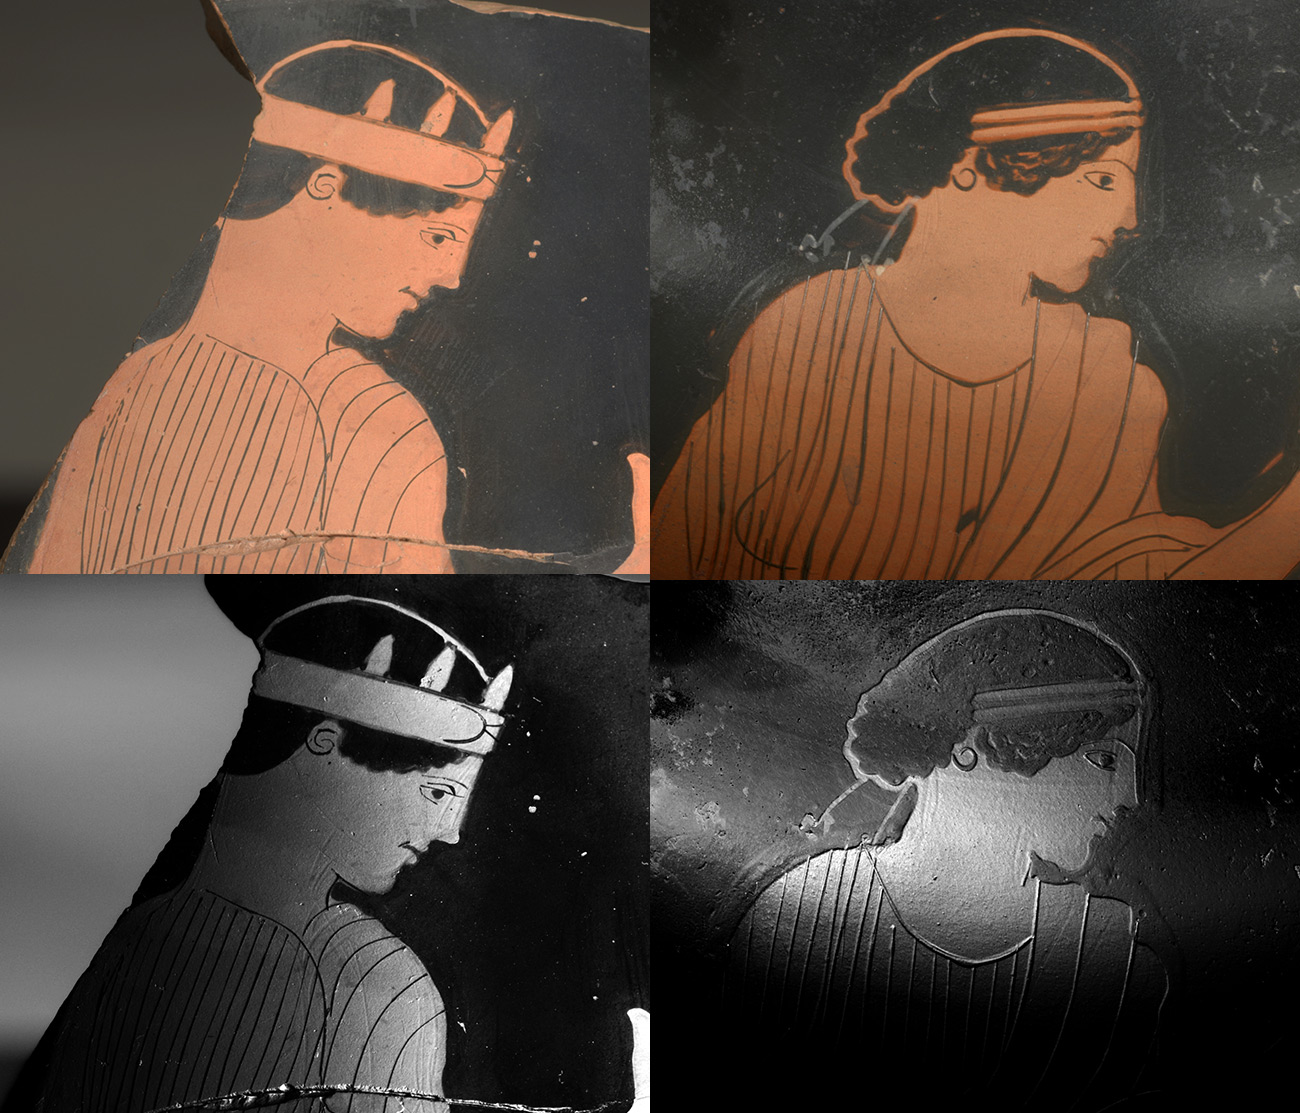 Grid of four images showing vase paintings of female figures, one under natural light and one under black and white technical imaging